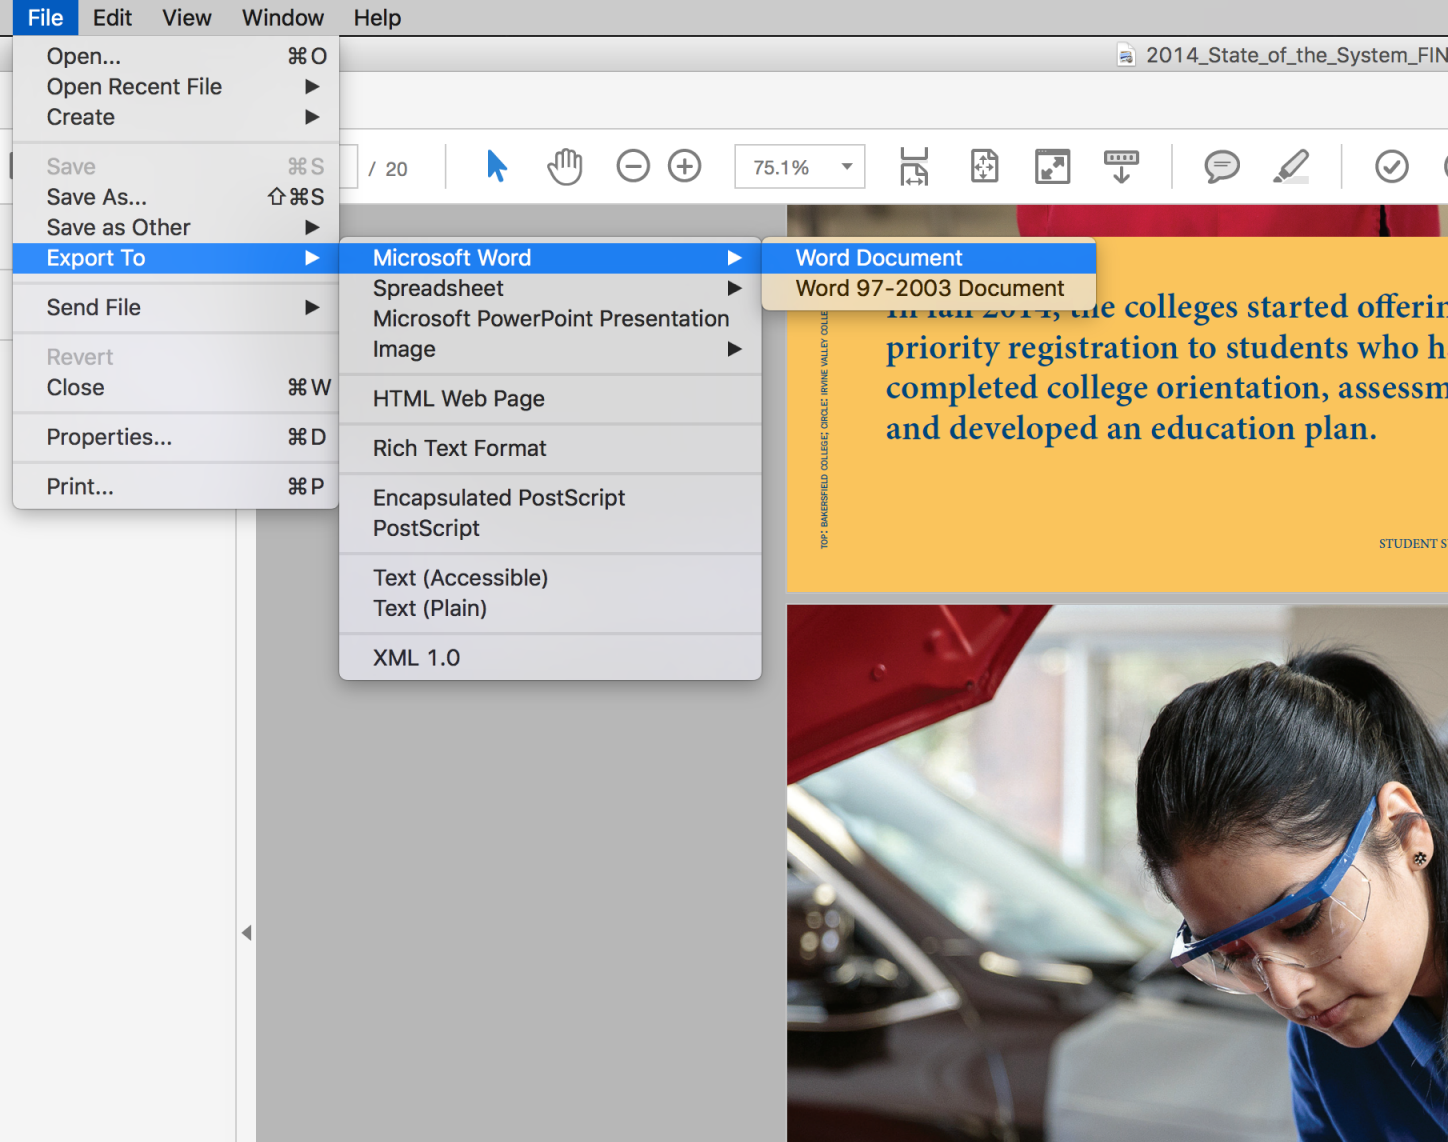 Screenshot of the Export To option from Adobe Acrobat.